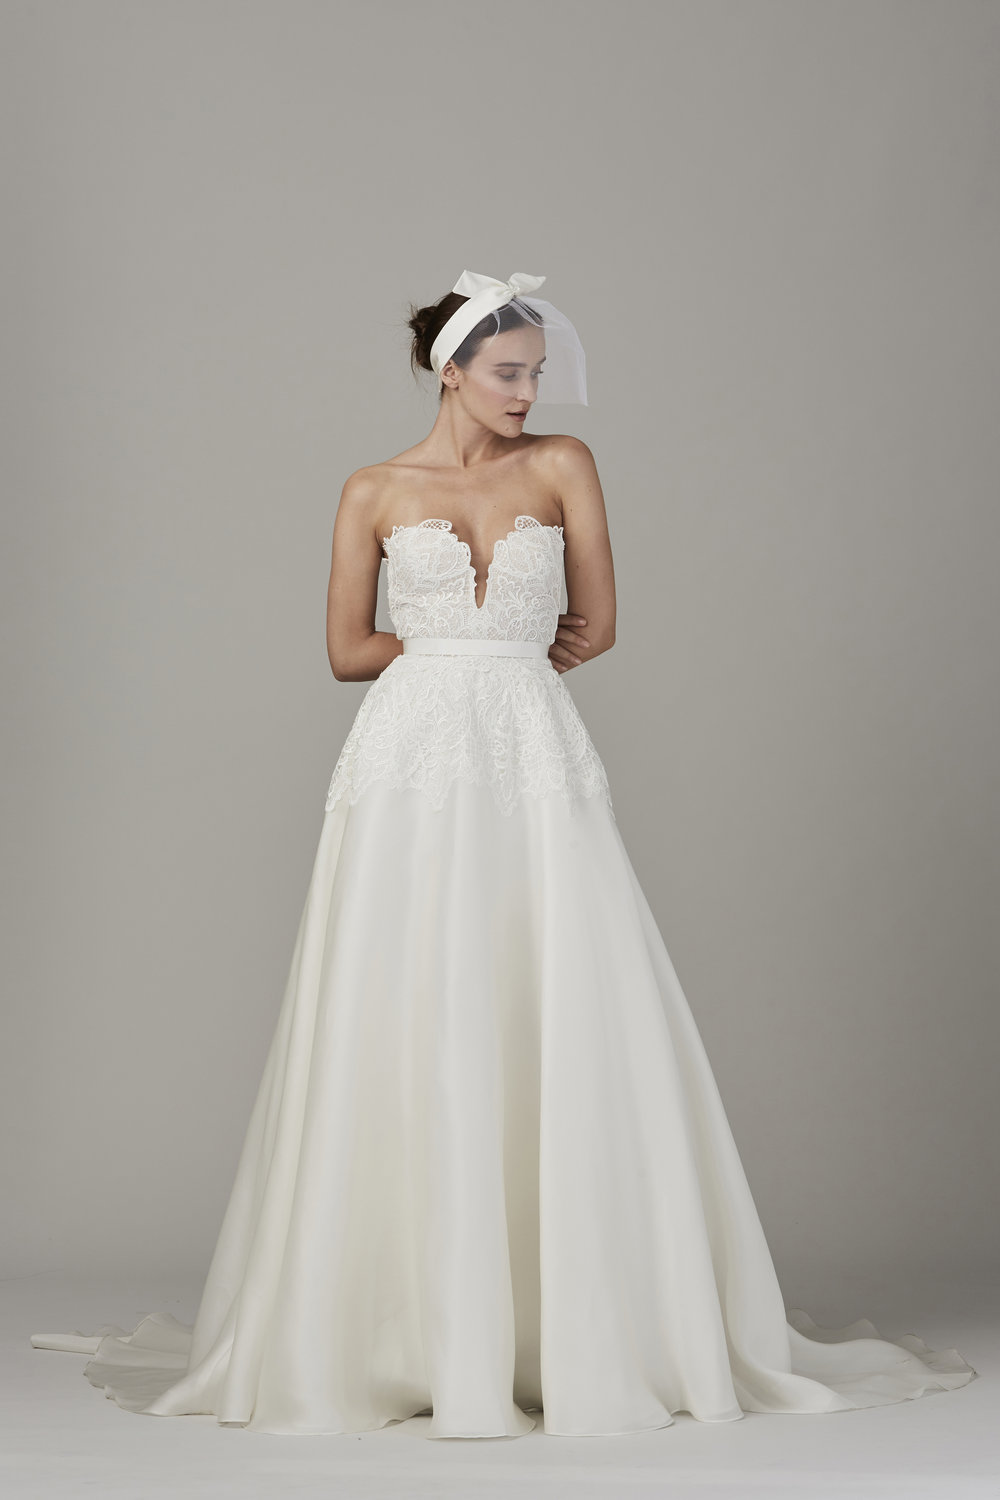 THE PENINSULA $5,695 60% OFF,  NOW $2,278  SIZE 8